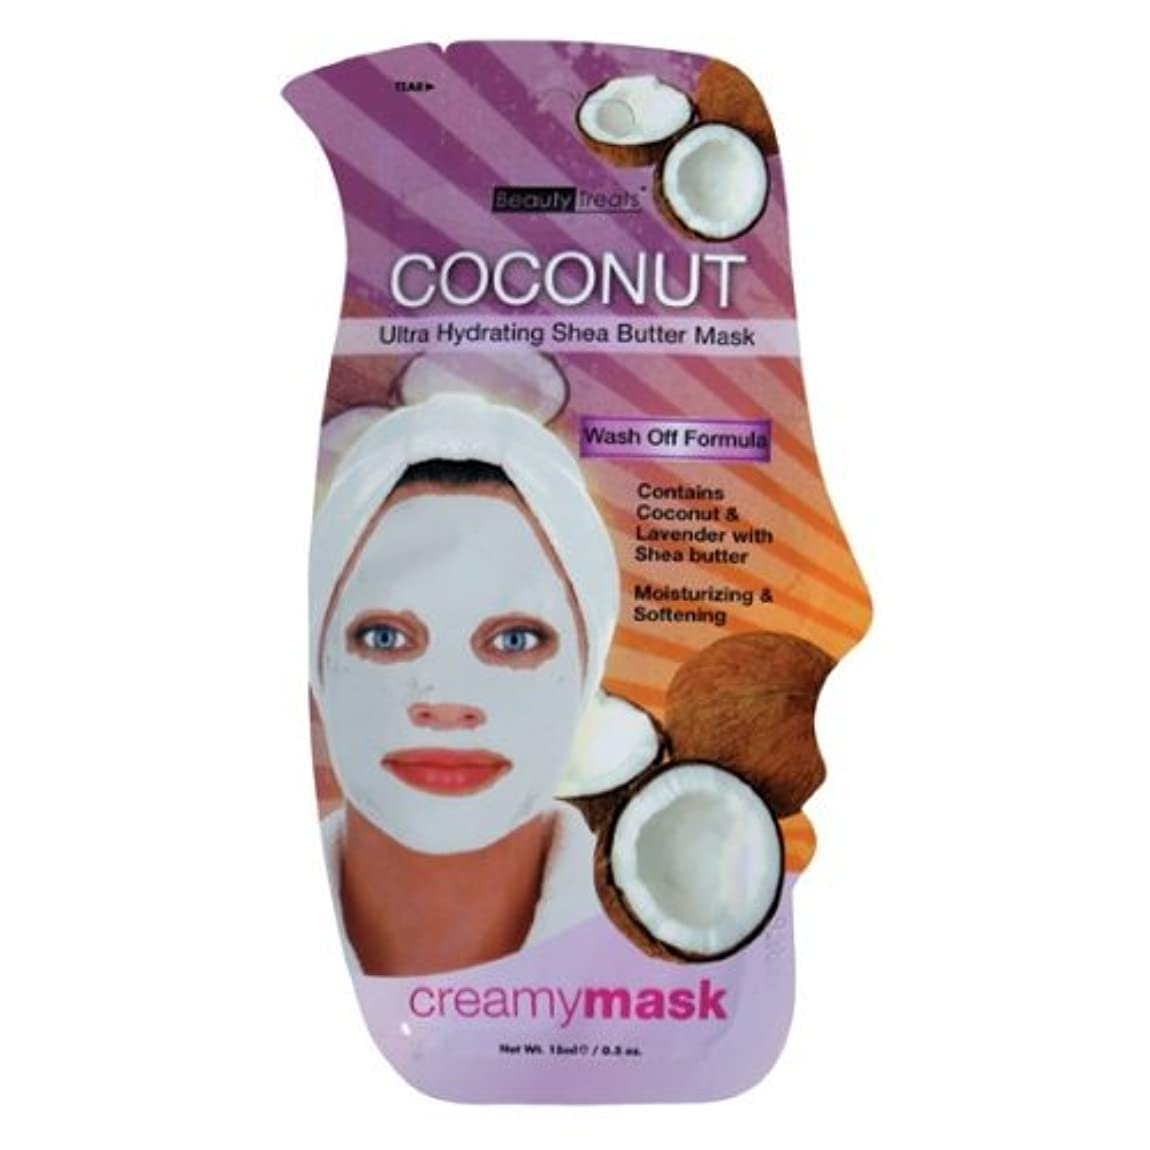 競う実行するママ(3 Pack) BEAUTY TREATS Coconut Ultra Hydrating Shea Butter Mask - Coconut (並行輸入品)